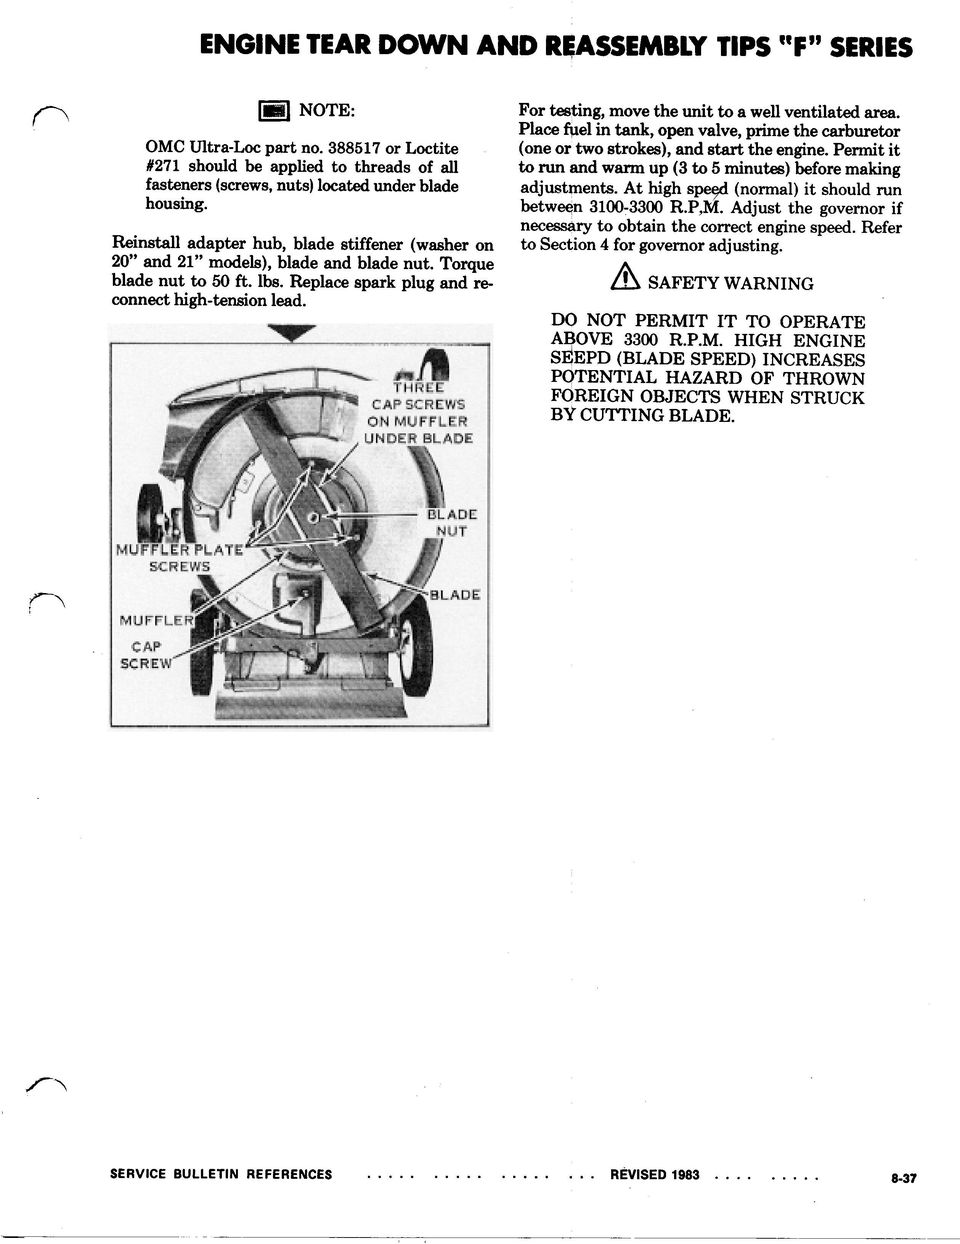 Piston And Cylinder Walls Scoring Pdf 3100 Engine Diagram For Testing Move The Unit To A Well Ventilated Area Place Fuel In Tank